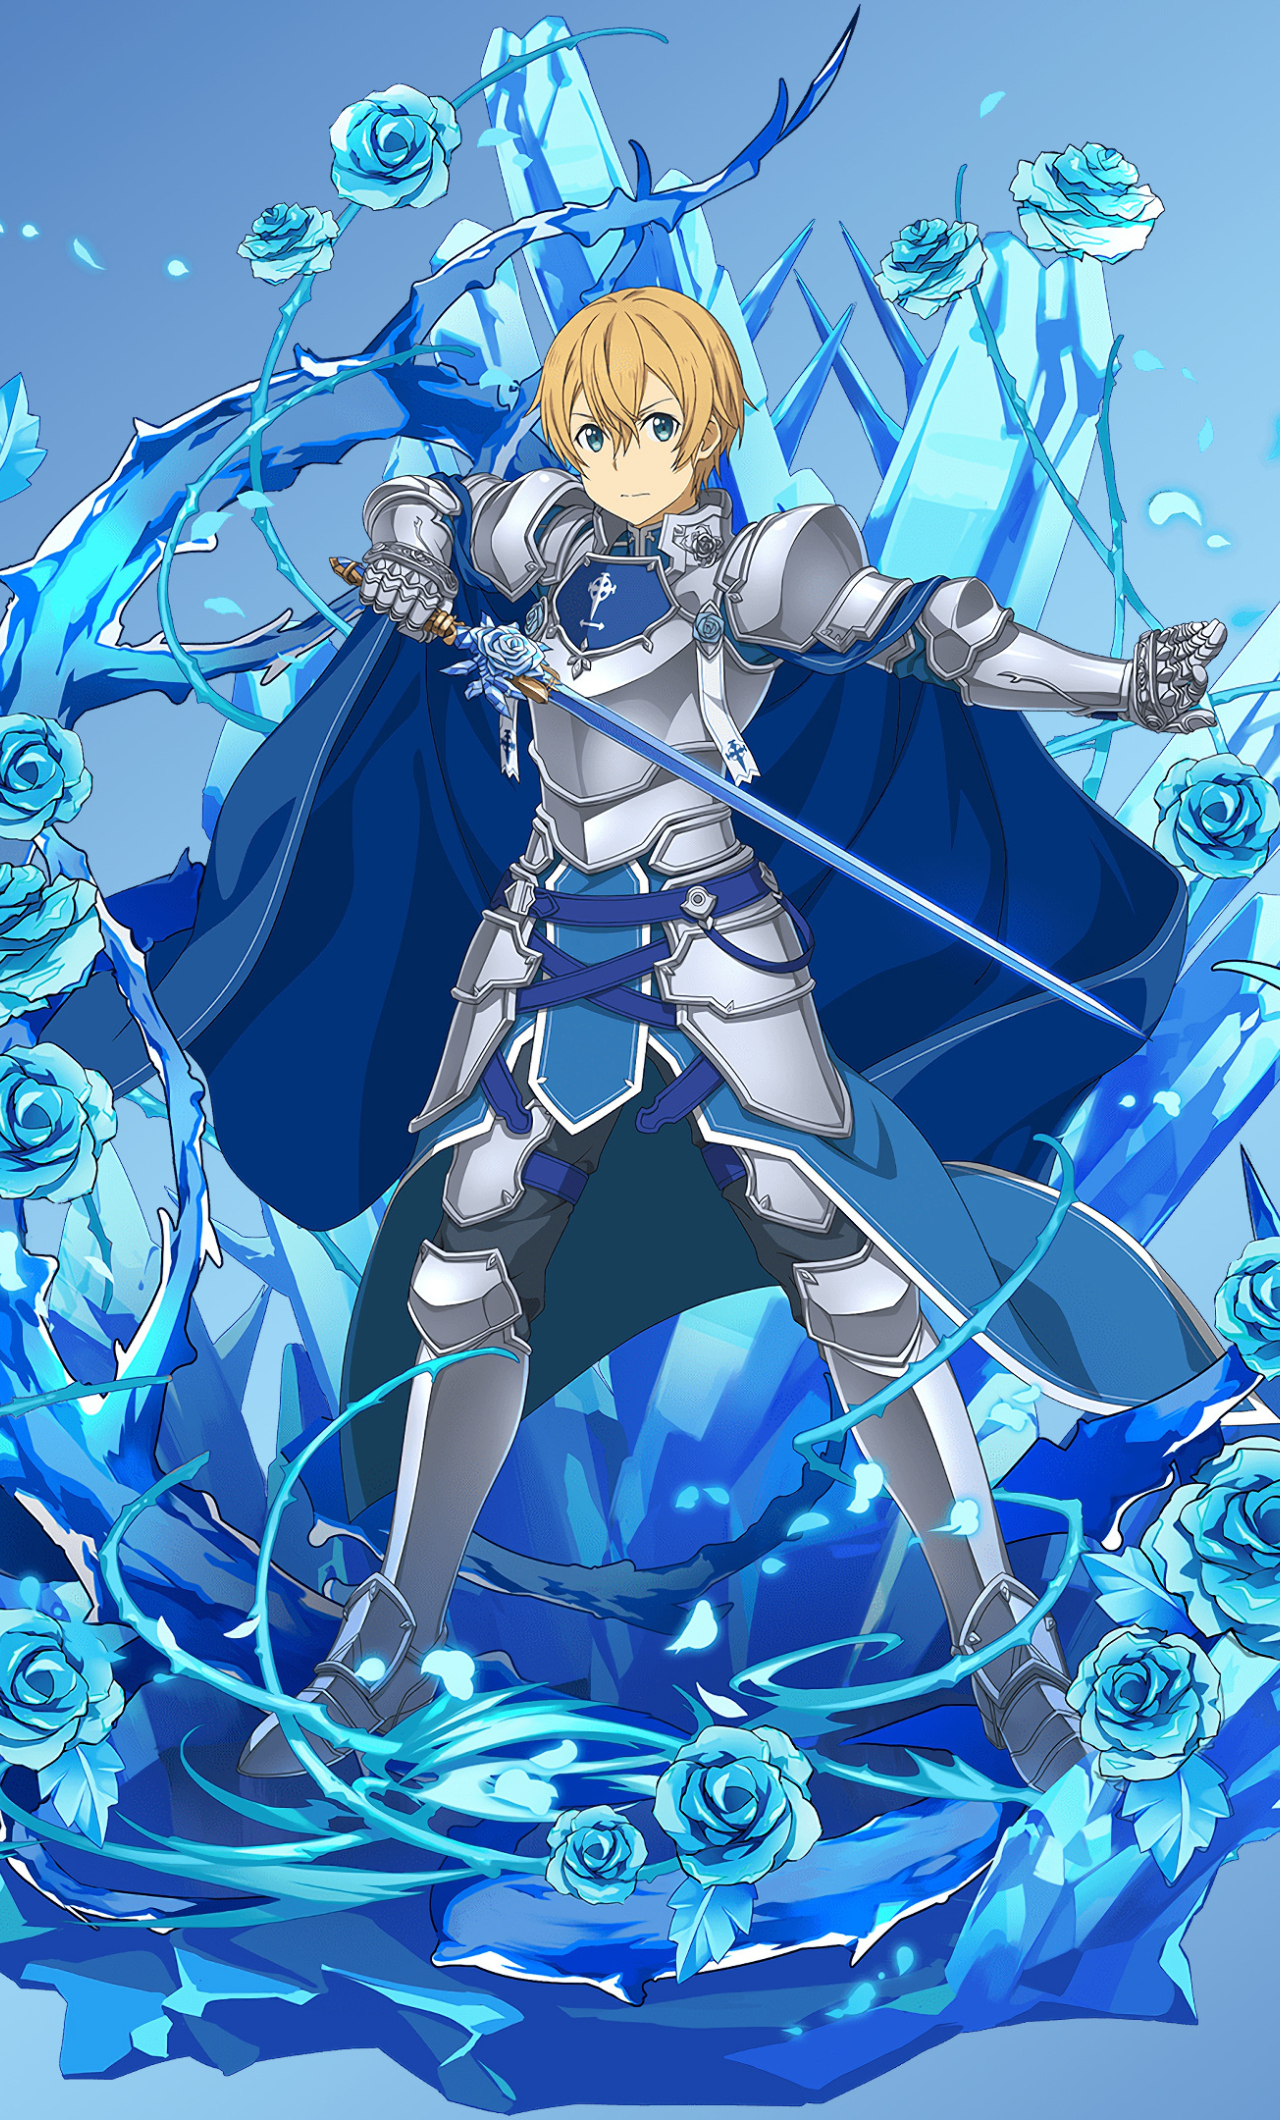 1280x2120 Eugeo Sword Art Online Alicization Iphone 6 Plus Wallpaper Hd Anime 4k Wallpapers Images Photos And Background